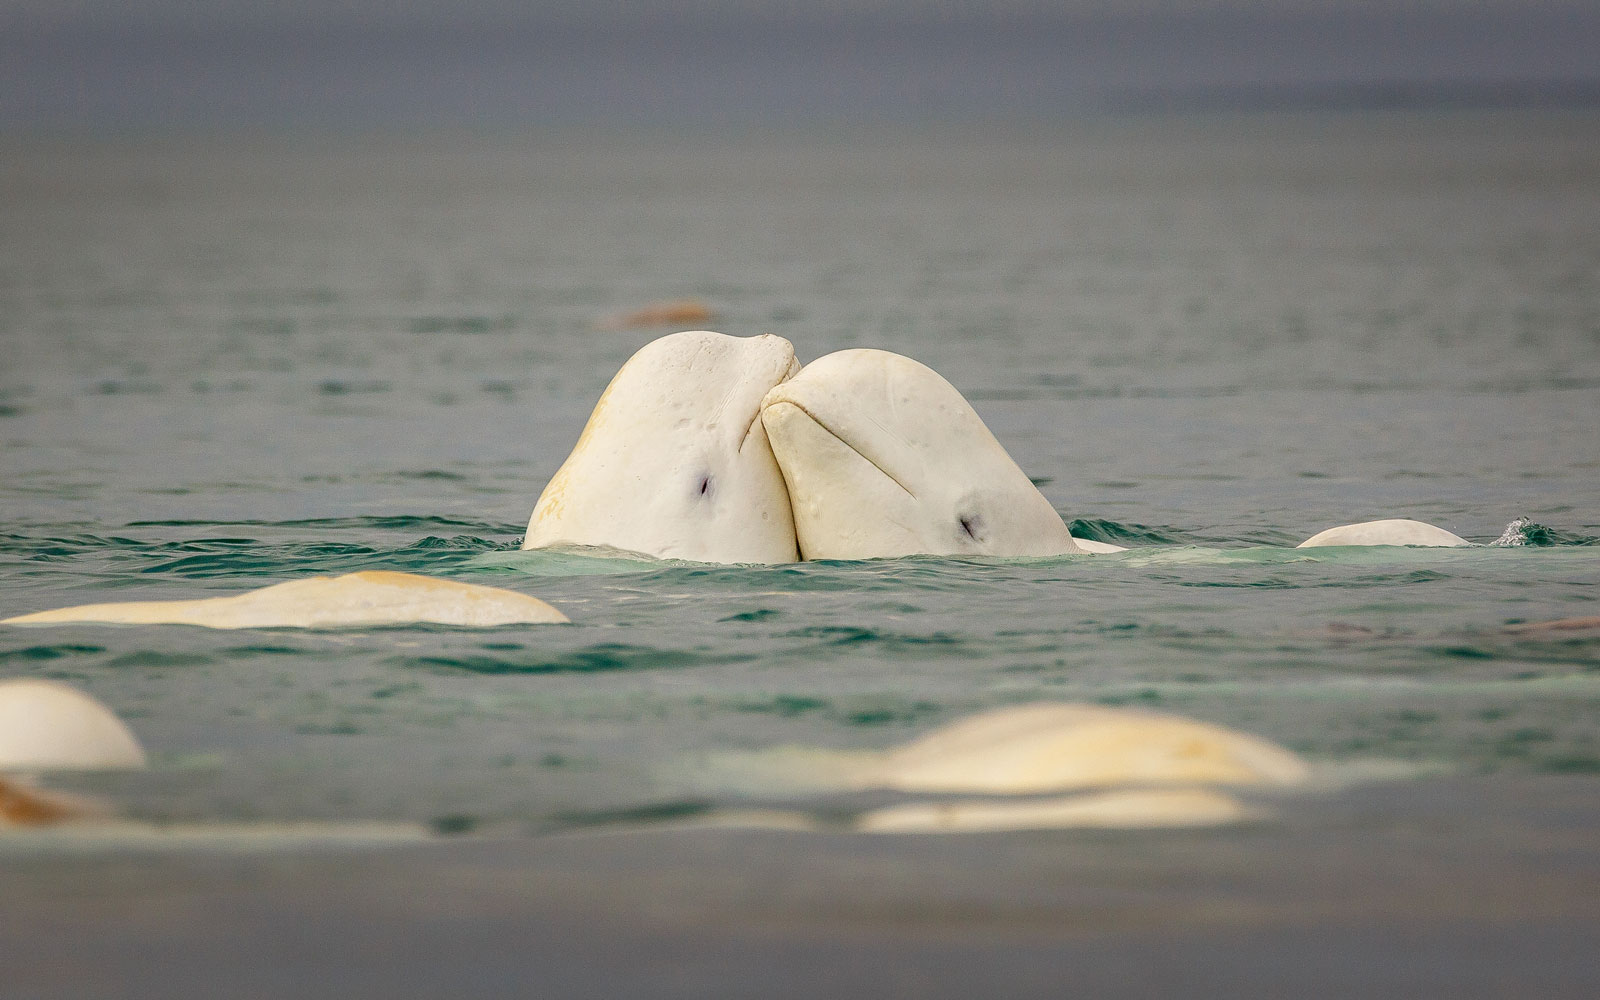 The First-ever Open-water Beluga Sanctuary Will Welcome Two Adorable Whales in June